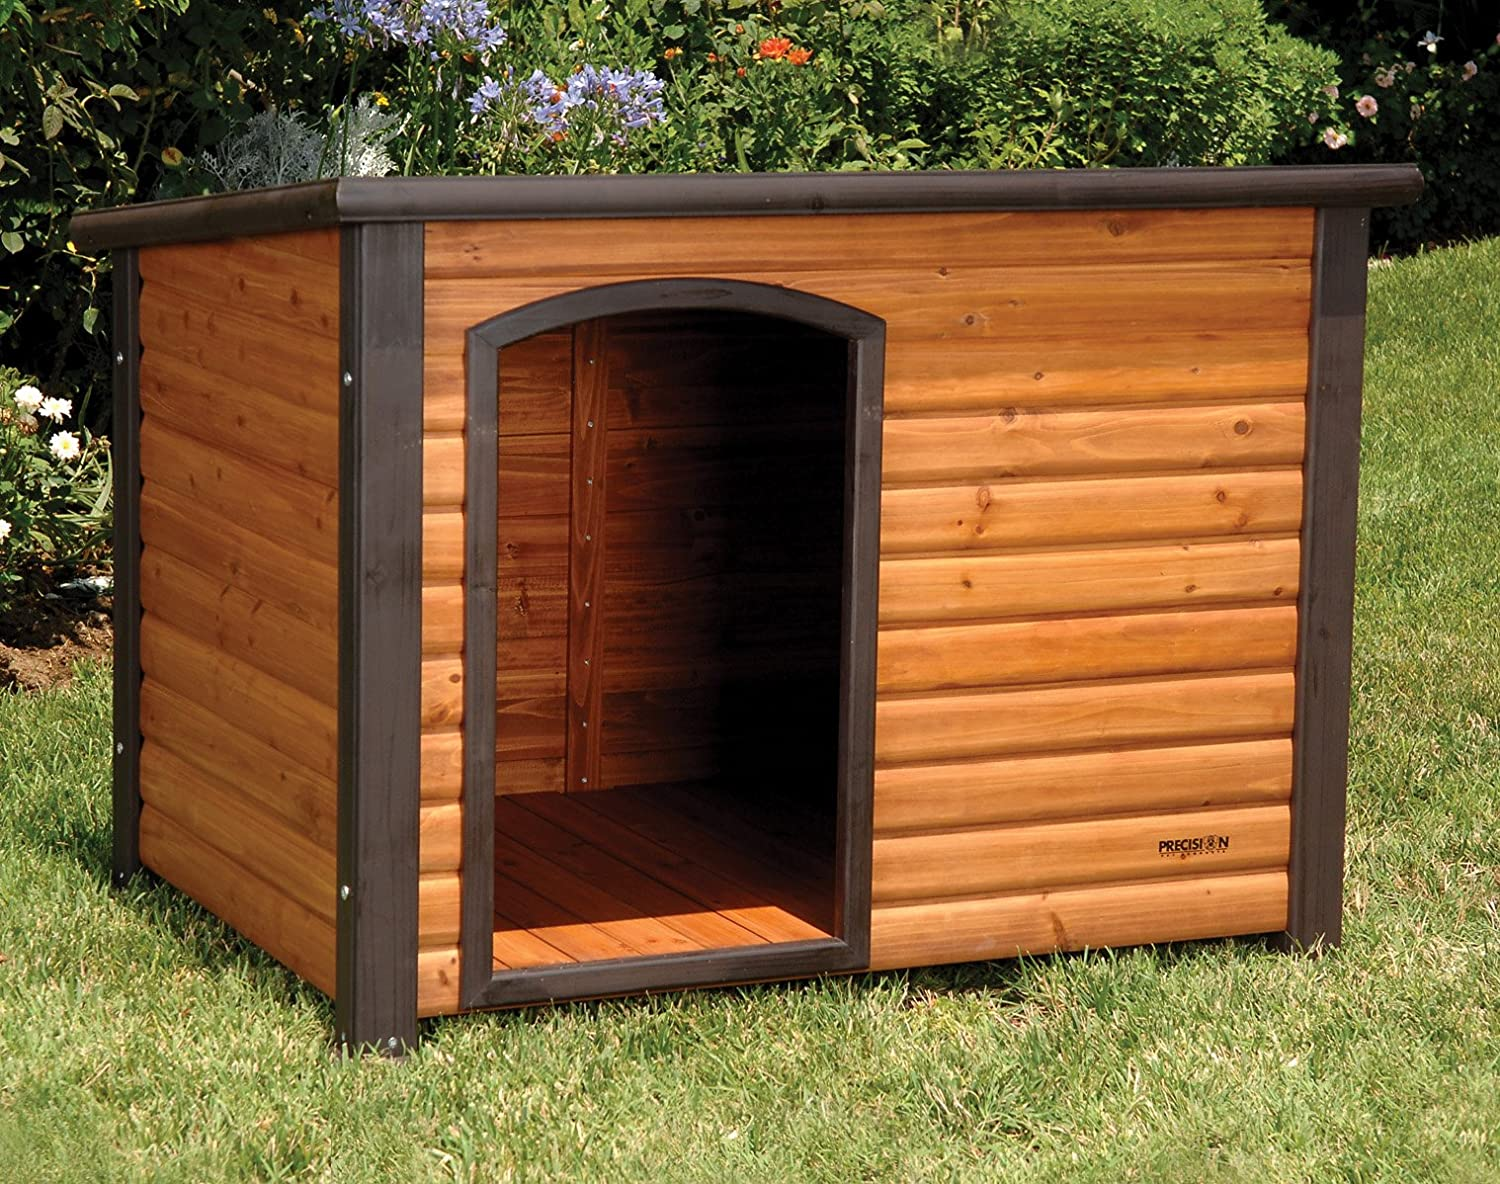 amazoncom precision pet extreme log cabin large dog houses pet supplies